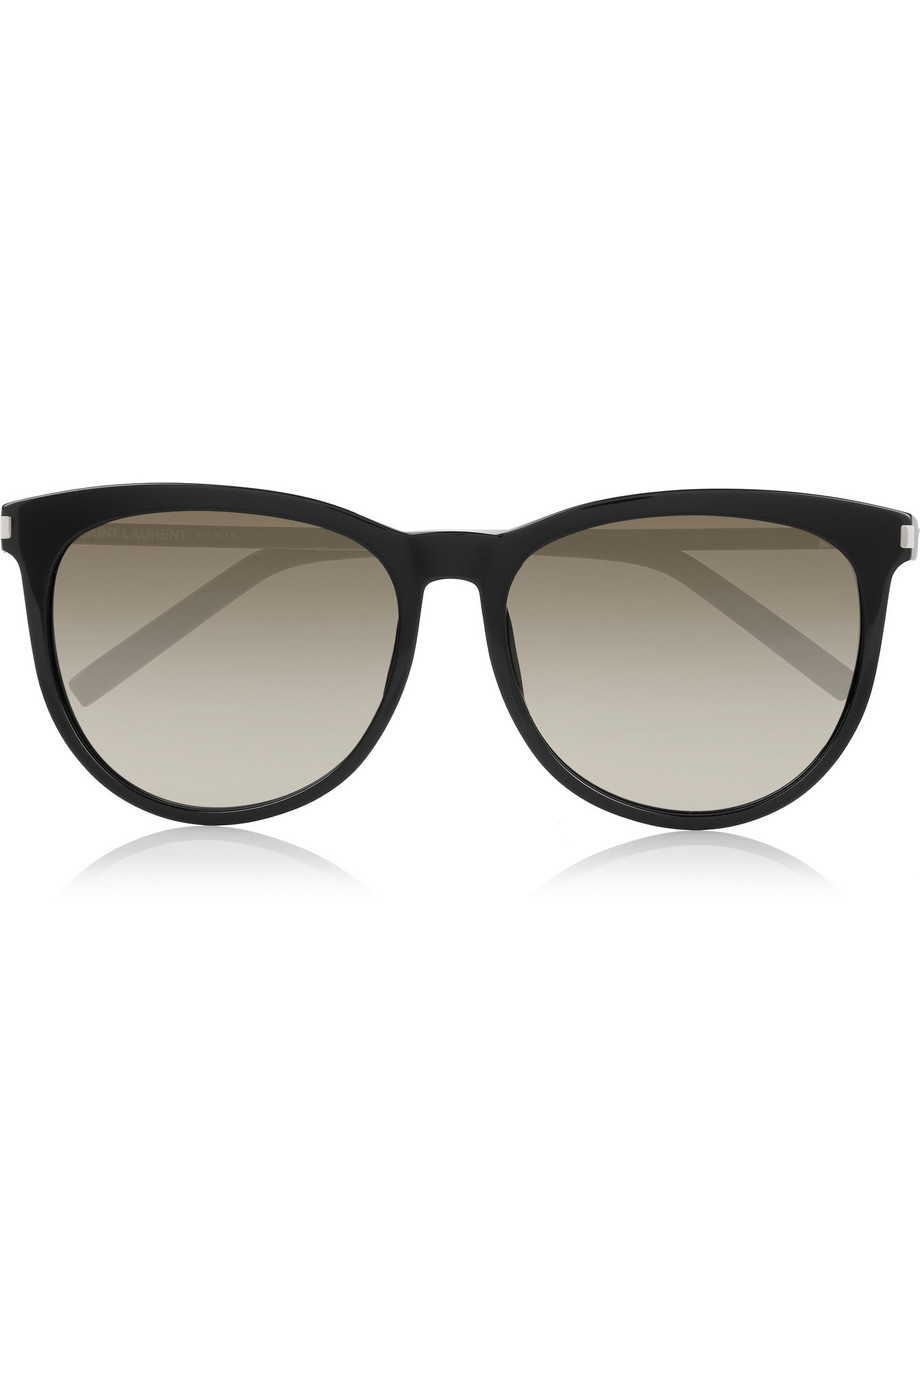 6911ed4f30a Lyst - Saint Laurent D-Frame Acetate And Metal Sunglasses in Black